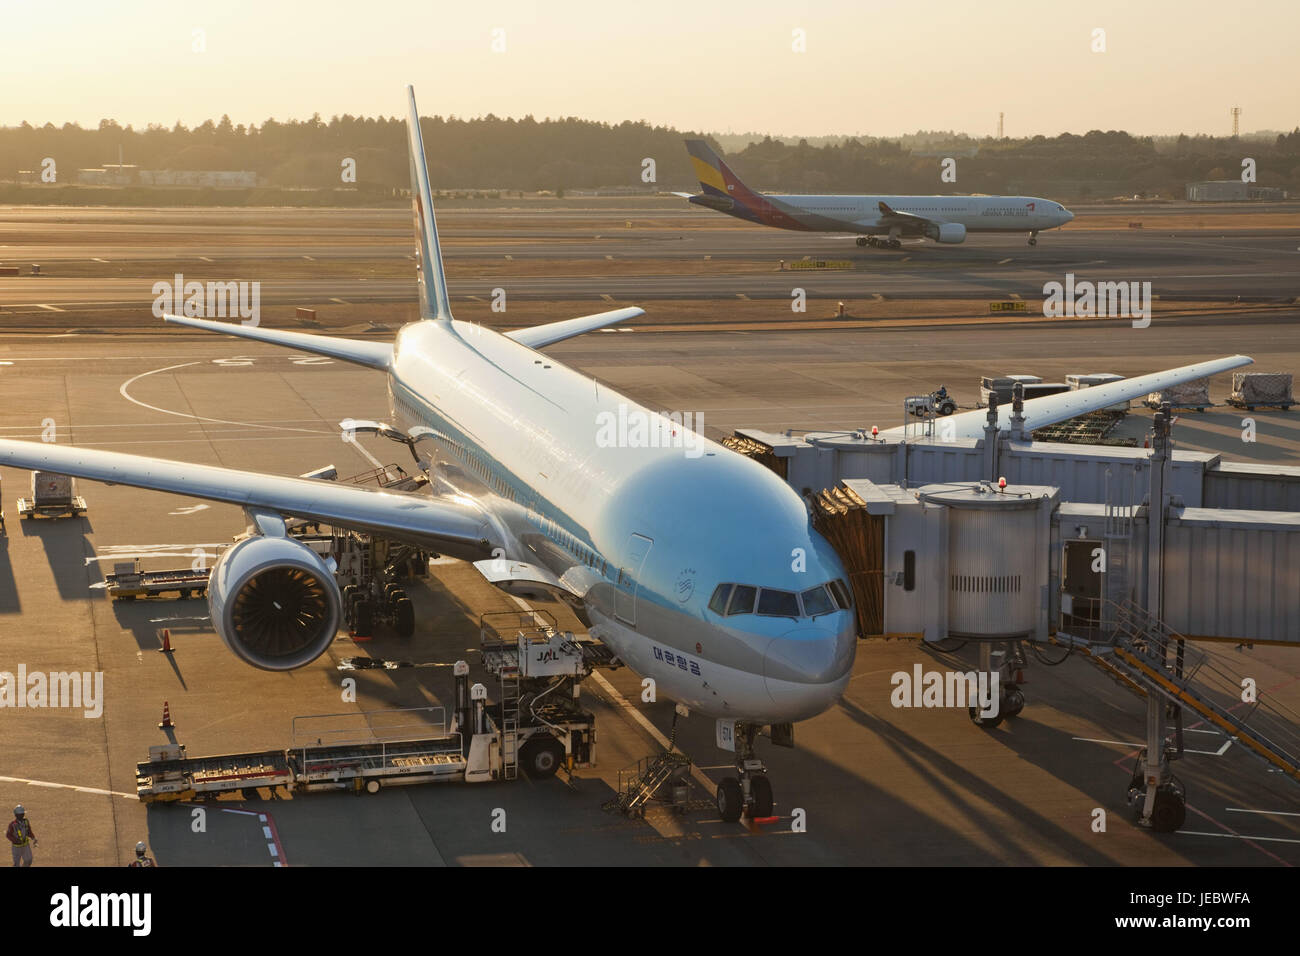 Japan, Tokyo, Narita international airport, landing field, airplanes, airport, outside, travel, journey by air, - Stock Image